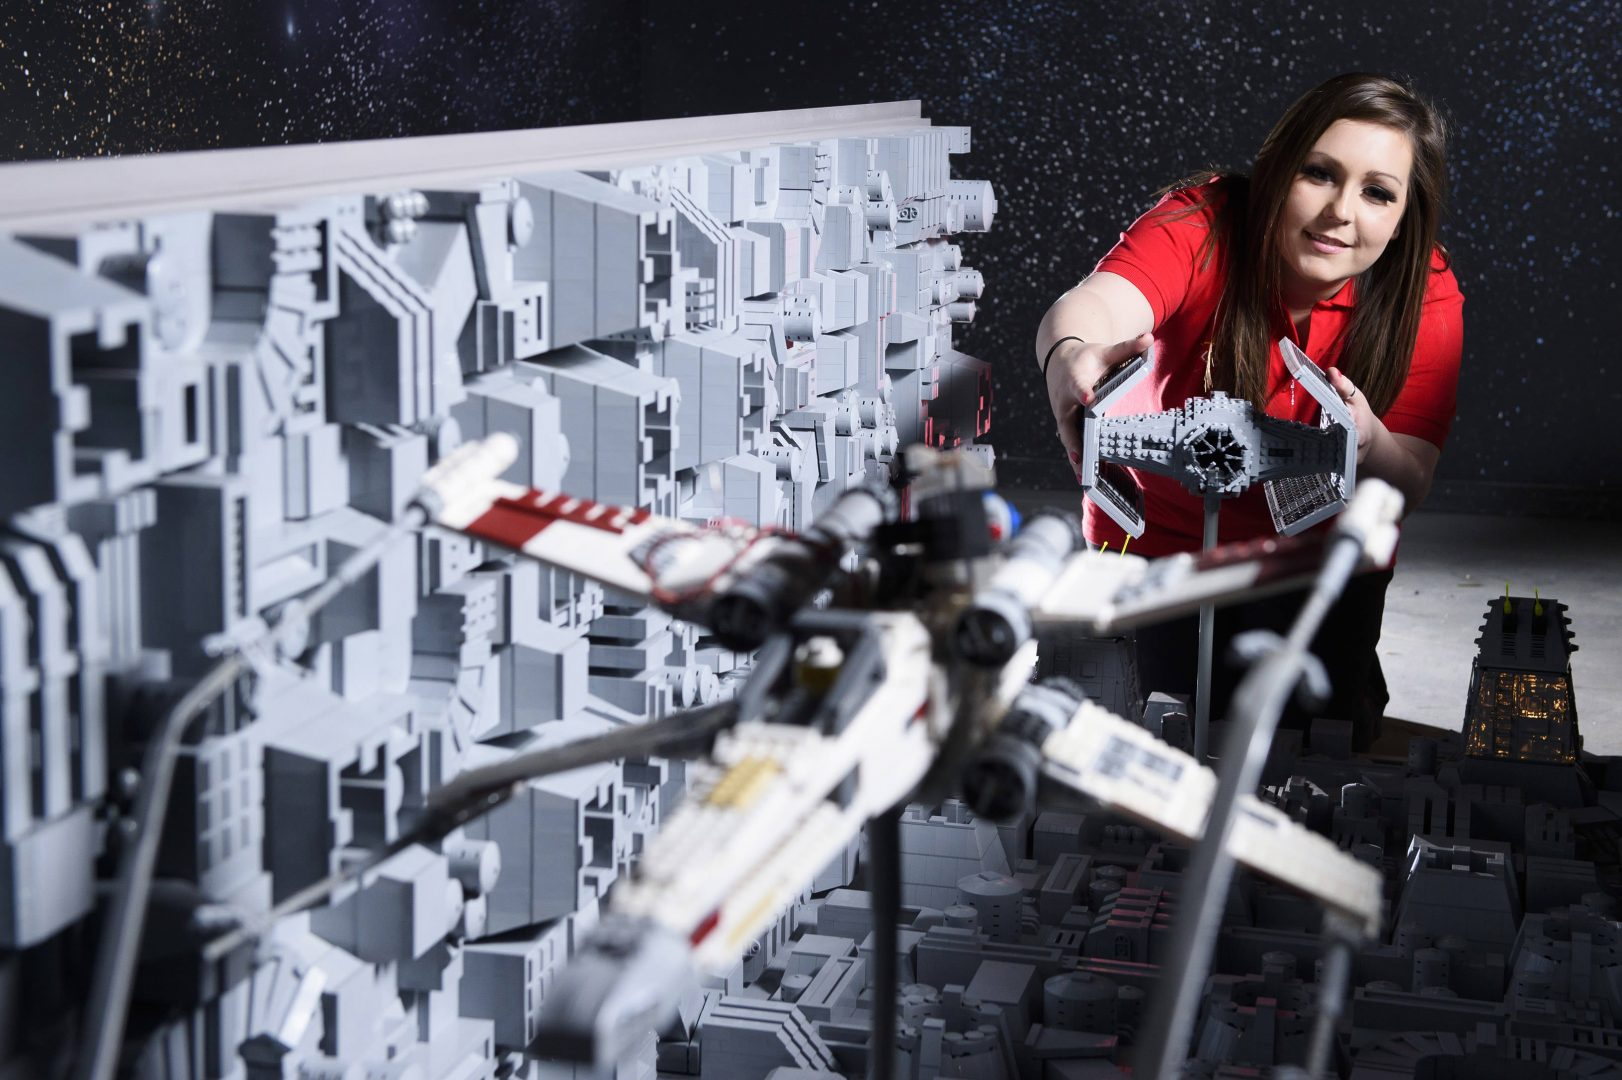 ONE OF THE WORLD'S BIGGEST EVER LEGO® STAR WARS™ MODELS INSTALLED AT THE LEGOLAND® WINDSOR RESORT. LAST PIECES PUT IN PLACE IN NEW LEGO® Star Wars™ Miniland Model Display Finale.  LEGOLAND® Model Maker Phoebe Rumbol, puts the finishing touches to some of the Rebel Alliance ships featured in a new finale scene to the Resort's LEGO® Star Wars™ Miniland Model Display. This is one of the smaller elements to the 651,086 brick scene and the centre piece is one of the most impressive and biggest LEGO® Star Wars™ models ever created - a 500,000 brick LEGO® Star Wars™ recreation of The Death Star.   The models were installed in a mammoth operation that took three days as the massive new 2.4 metre wide, 3 metre high creation was carefully hoisted into position and the final bricks and scenes were put in place. The hefty 860kg perfectly spherical model took 15 Model Makers three months to build and guests can trigger special effects and bring the scene to life when it opens at the Resort on 11 March.  TM & © Lucasfilm Ltd. All rights reserved